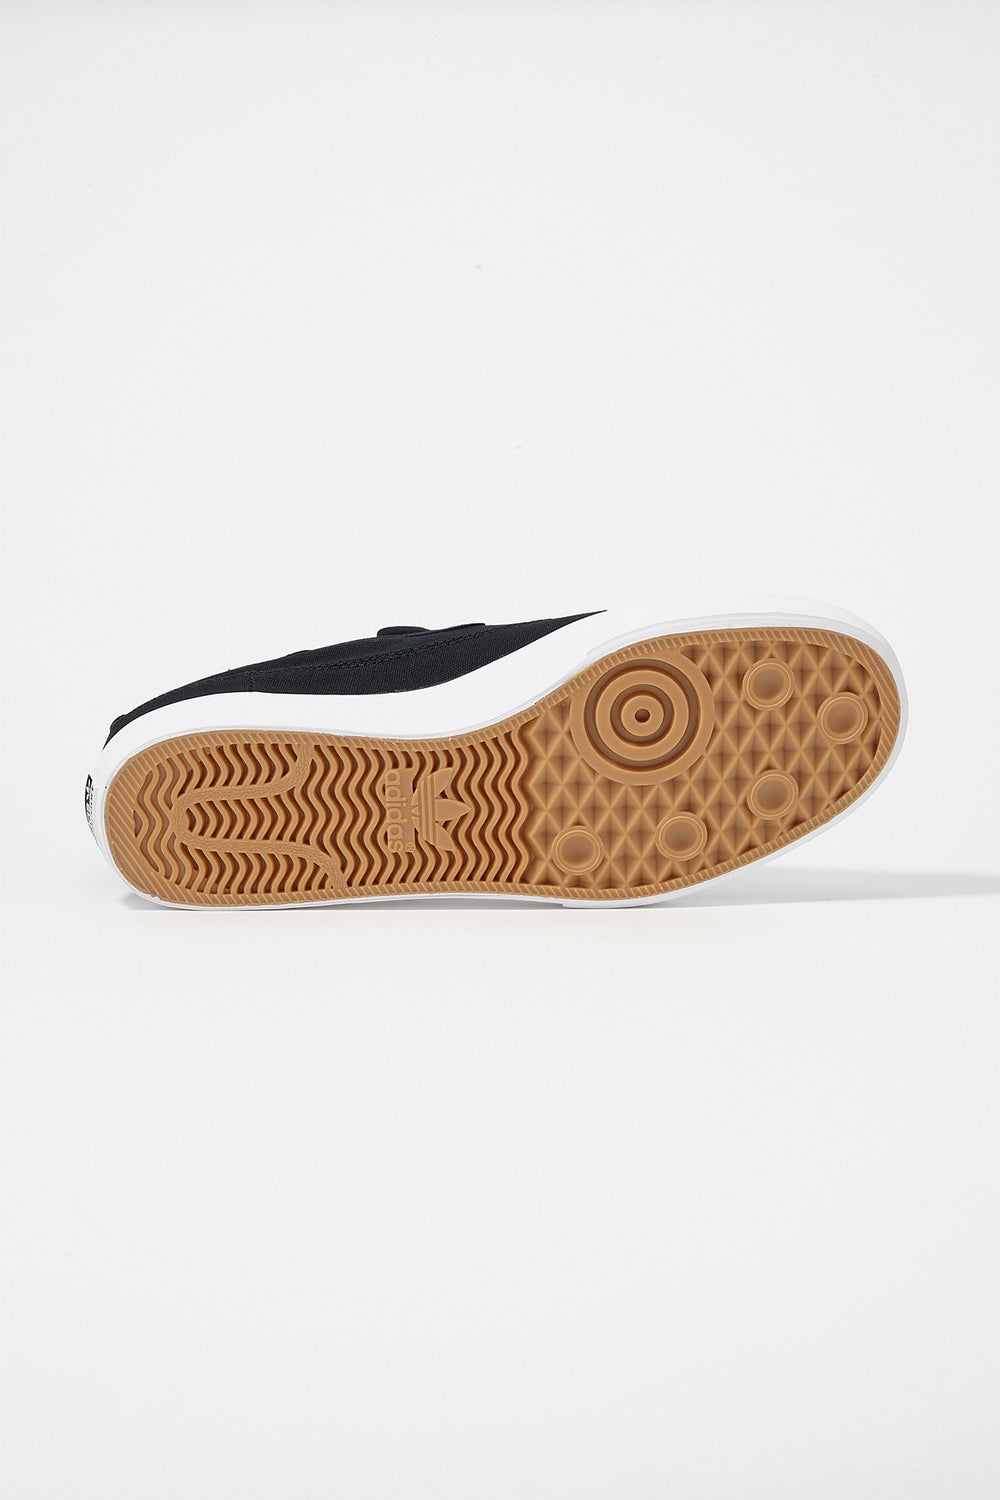 Adidas Mens Matchcourt Slip-On Shoes Black with White